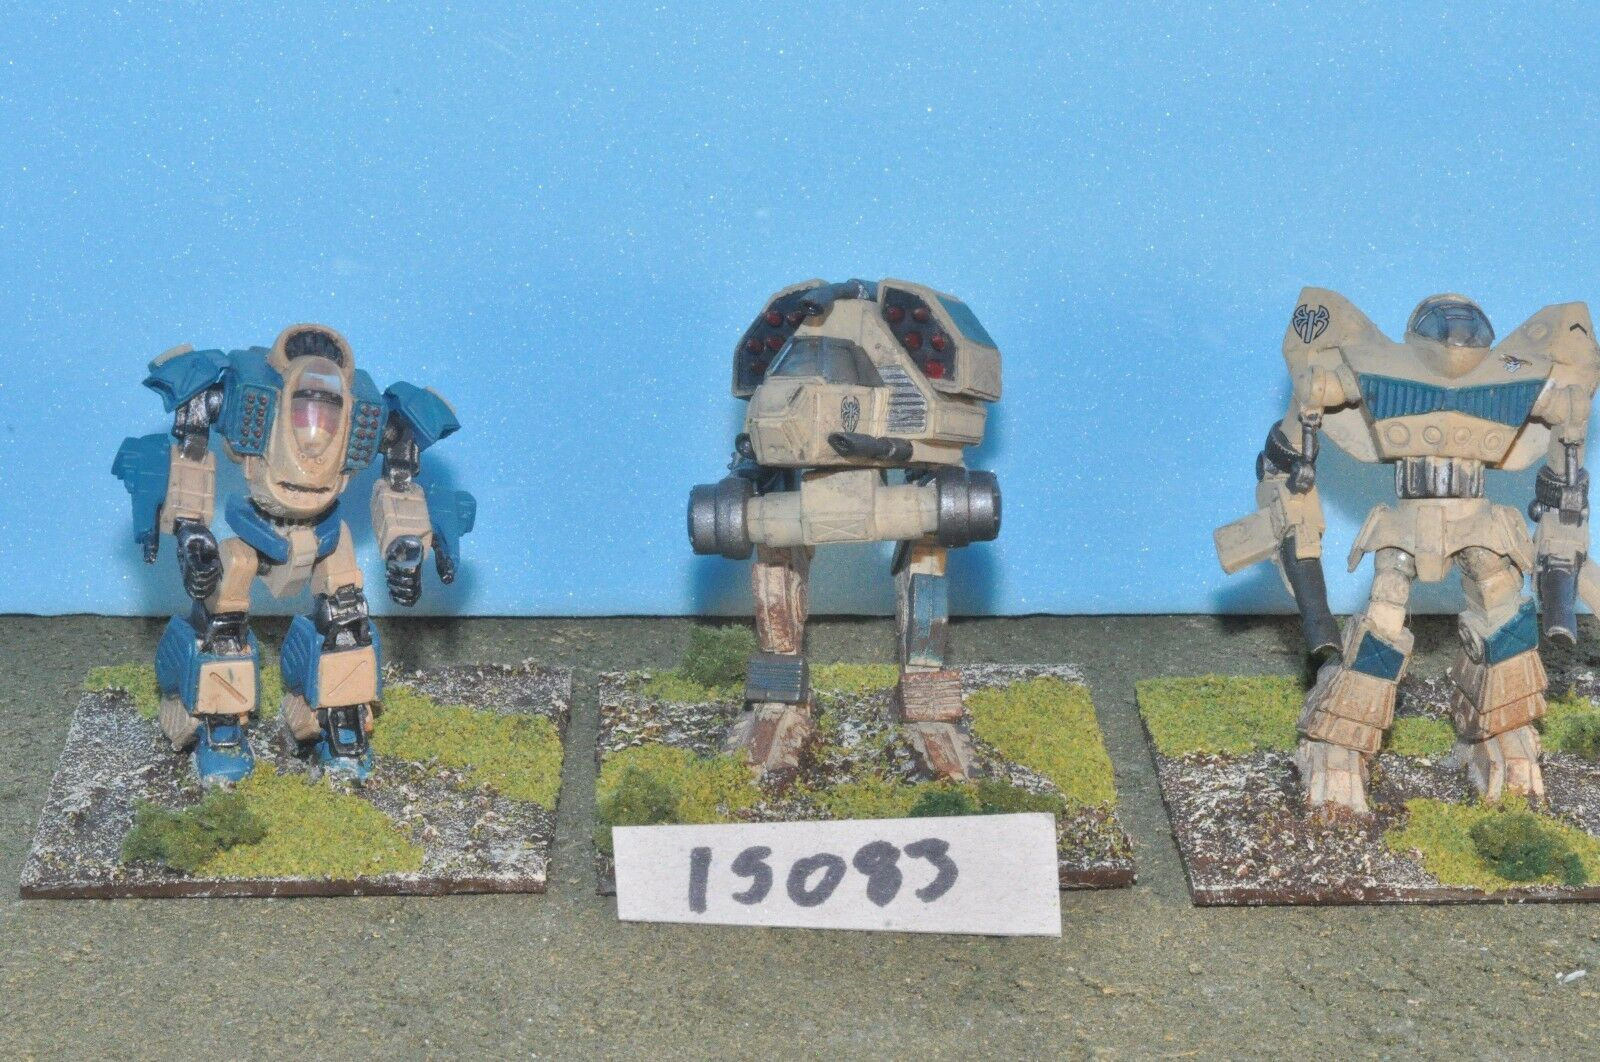 Mechwarrior battletech 3 battle mechs (15083) FASA